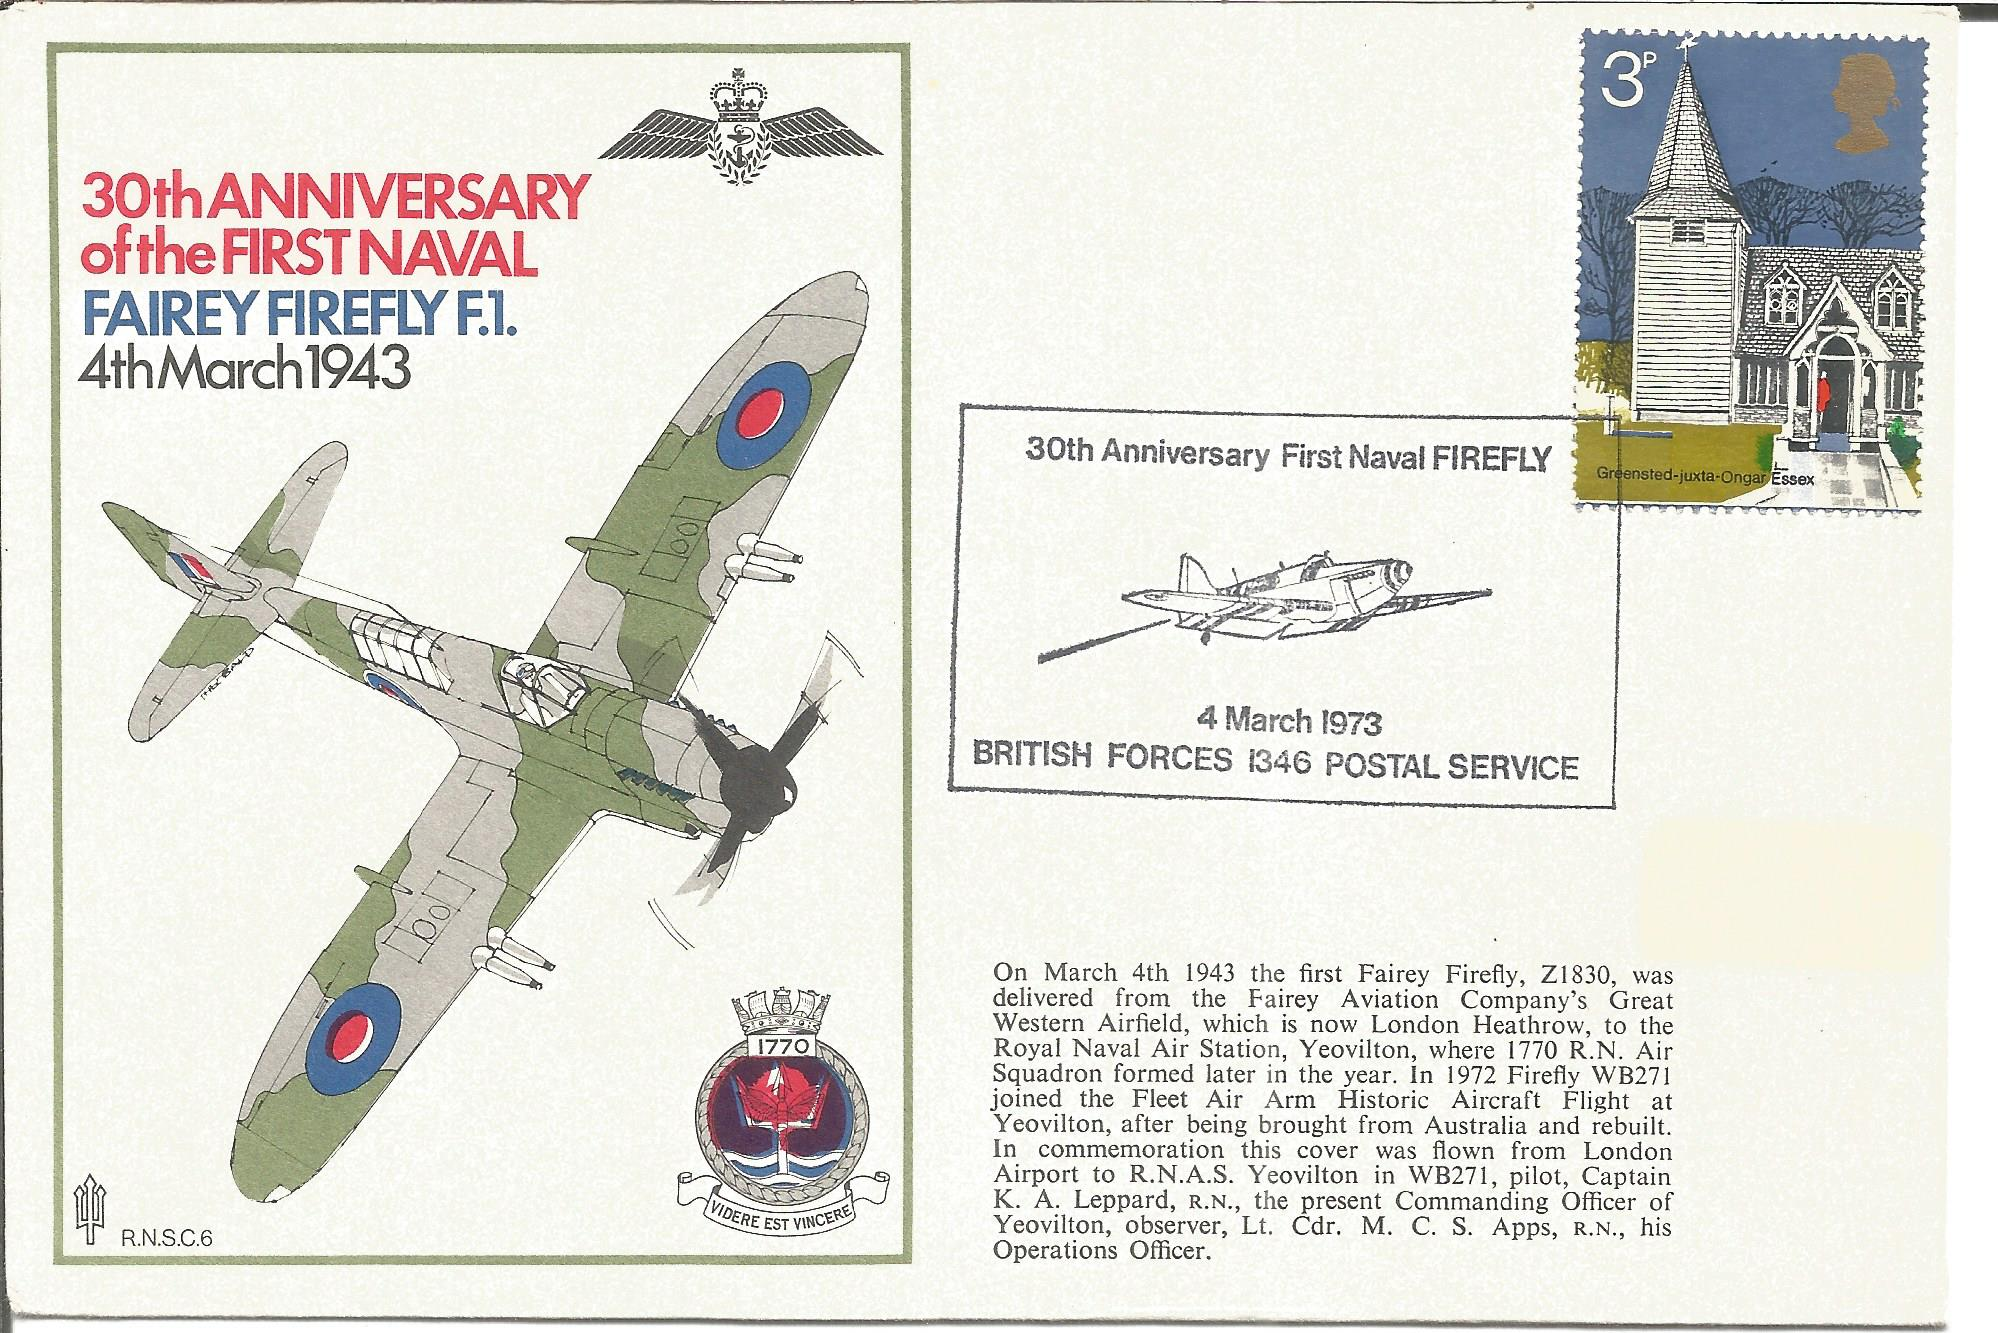 WW2 Japanese fighter ace Nobuo Ando signed on back of Navy Firefly cover. Good Condition. All